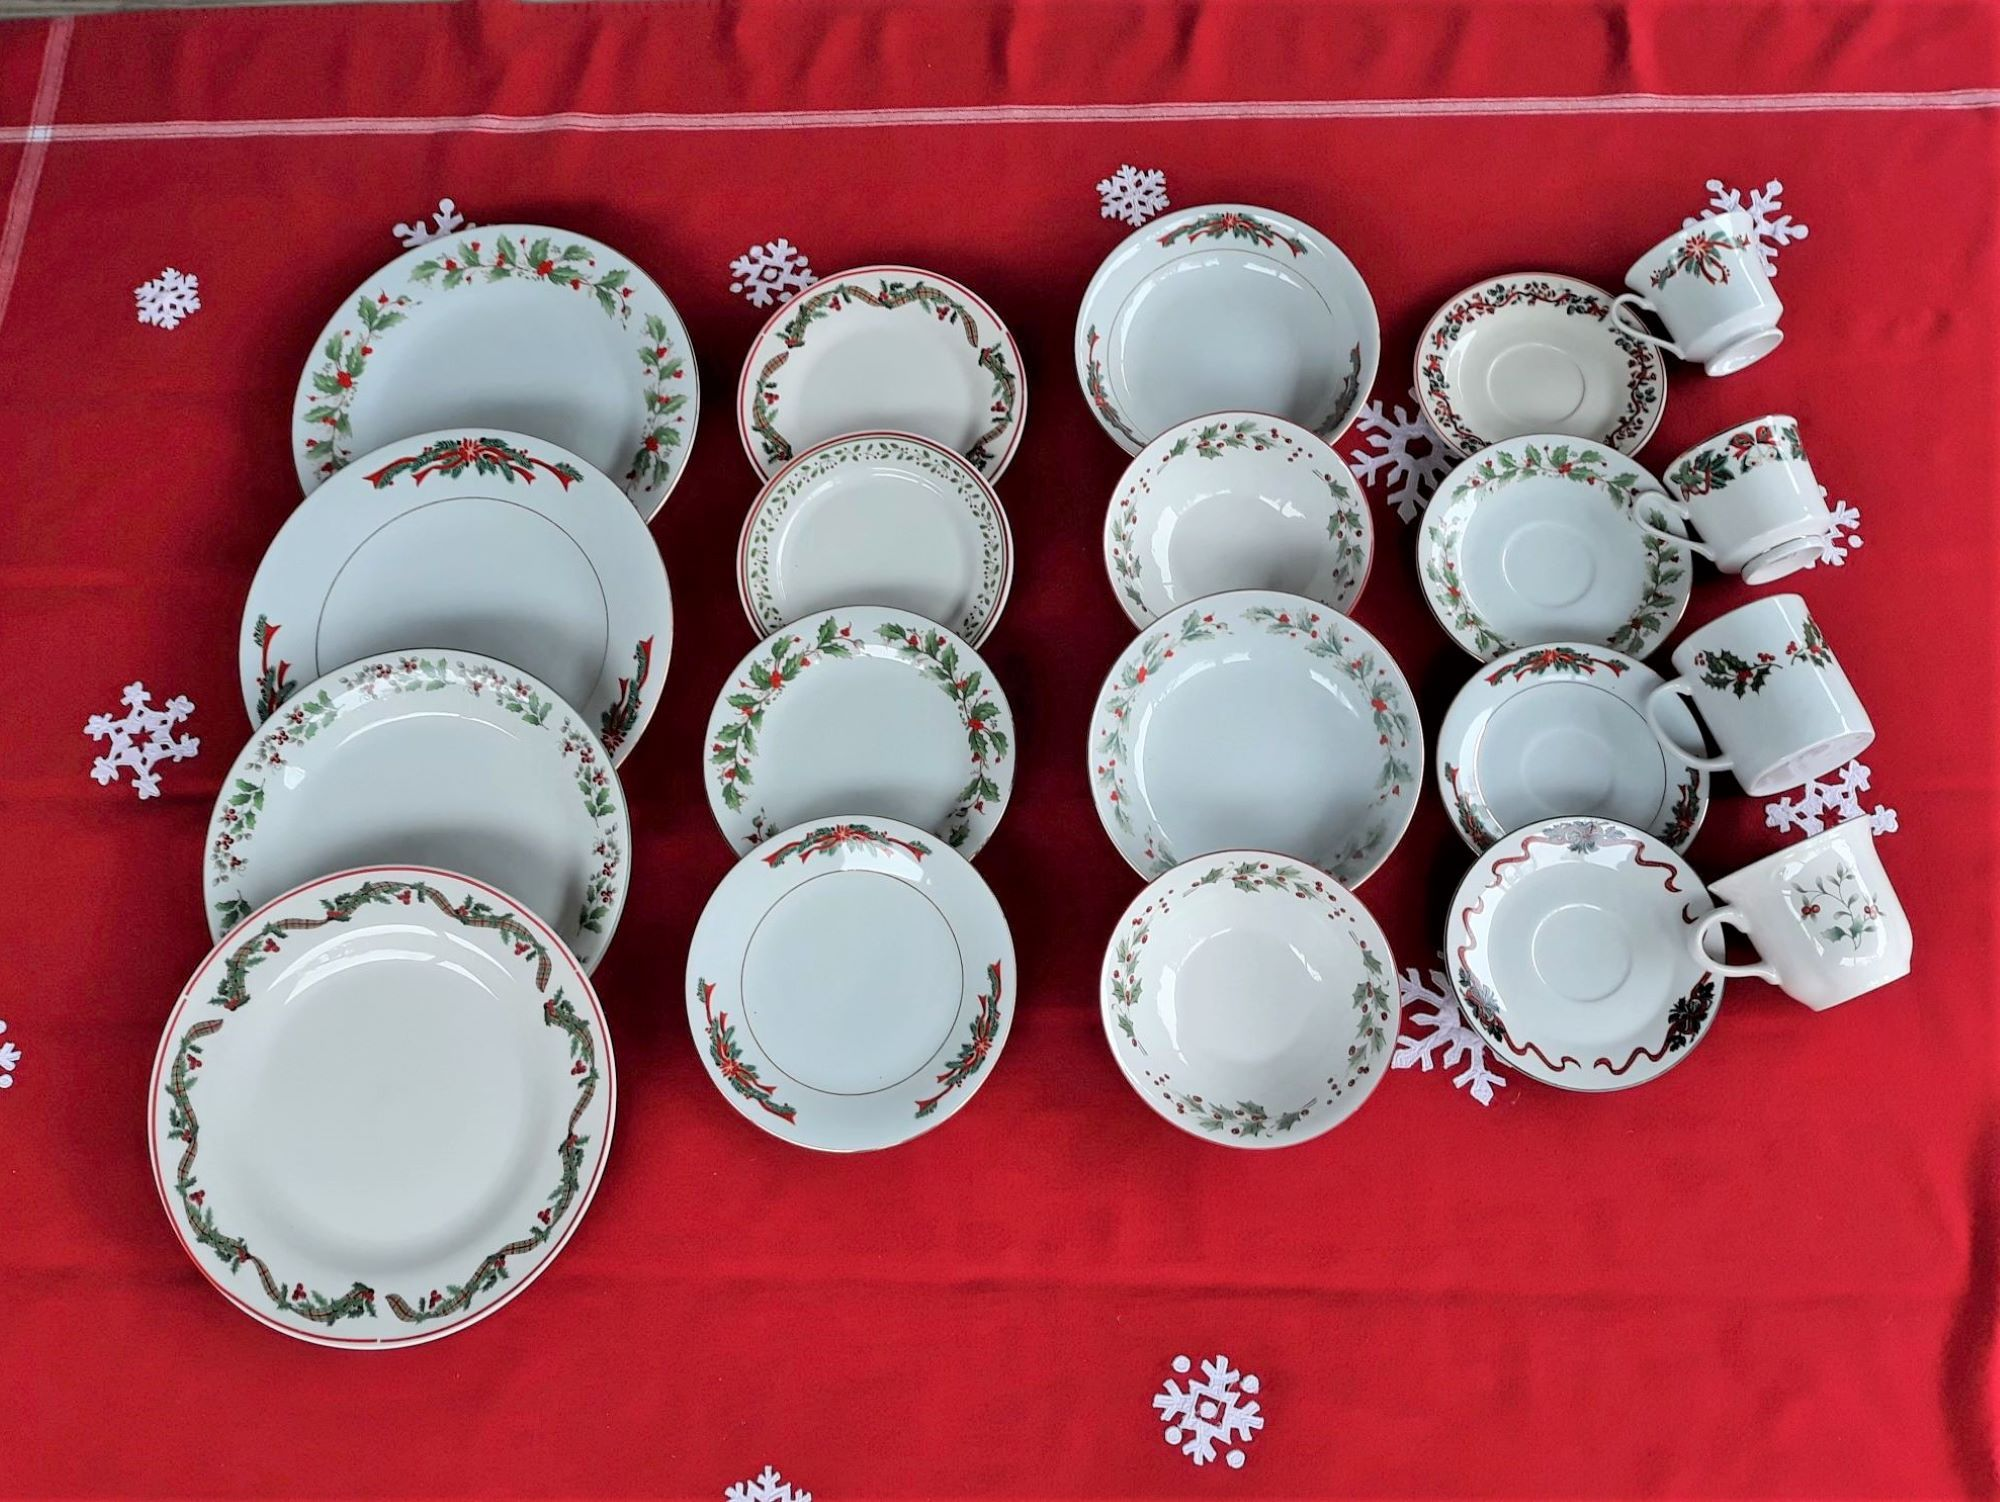 Vintage Christmas Mis Matched Ceramic Dinnerware 356 Located On Etsy In My Store Tigardreams Christmas China China Dinnerware Sets Ceramic Dinnerware